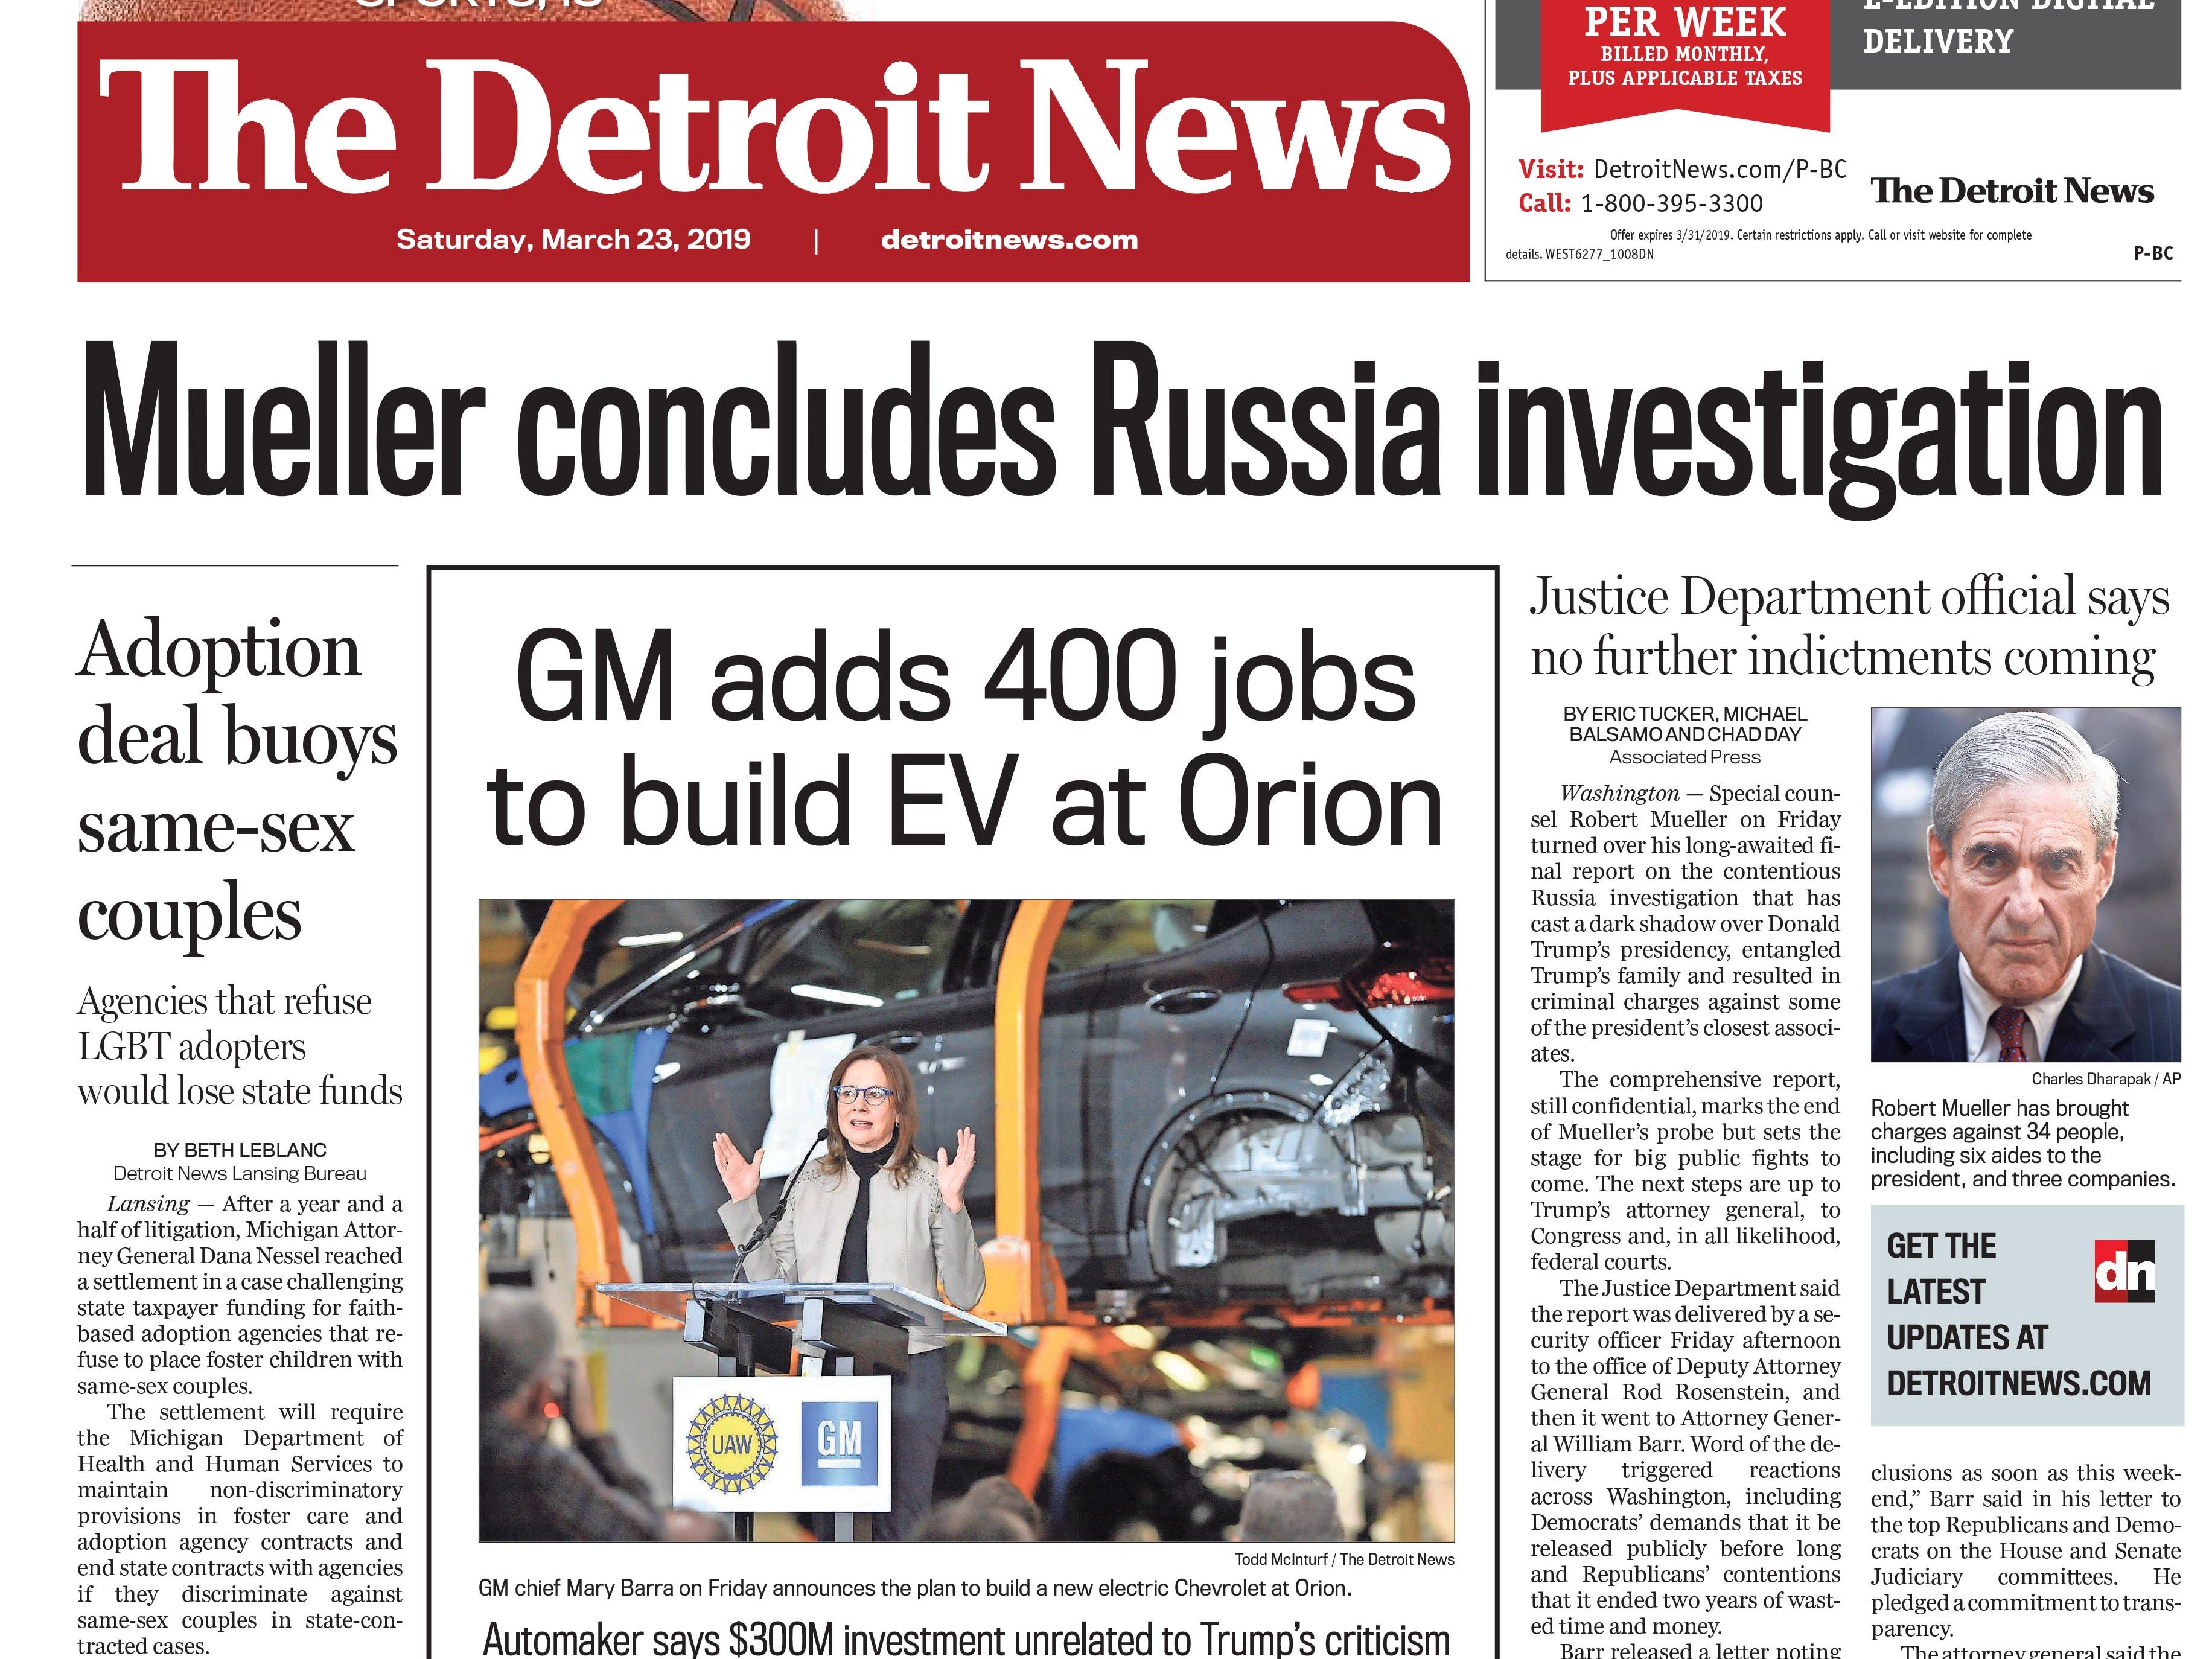 The front page of the Detroit News on Saturday, March 23, 2019.